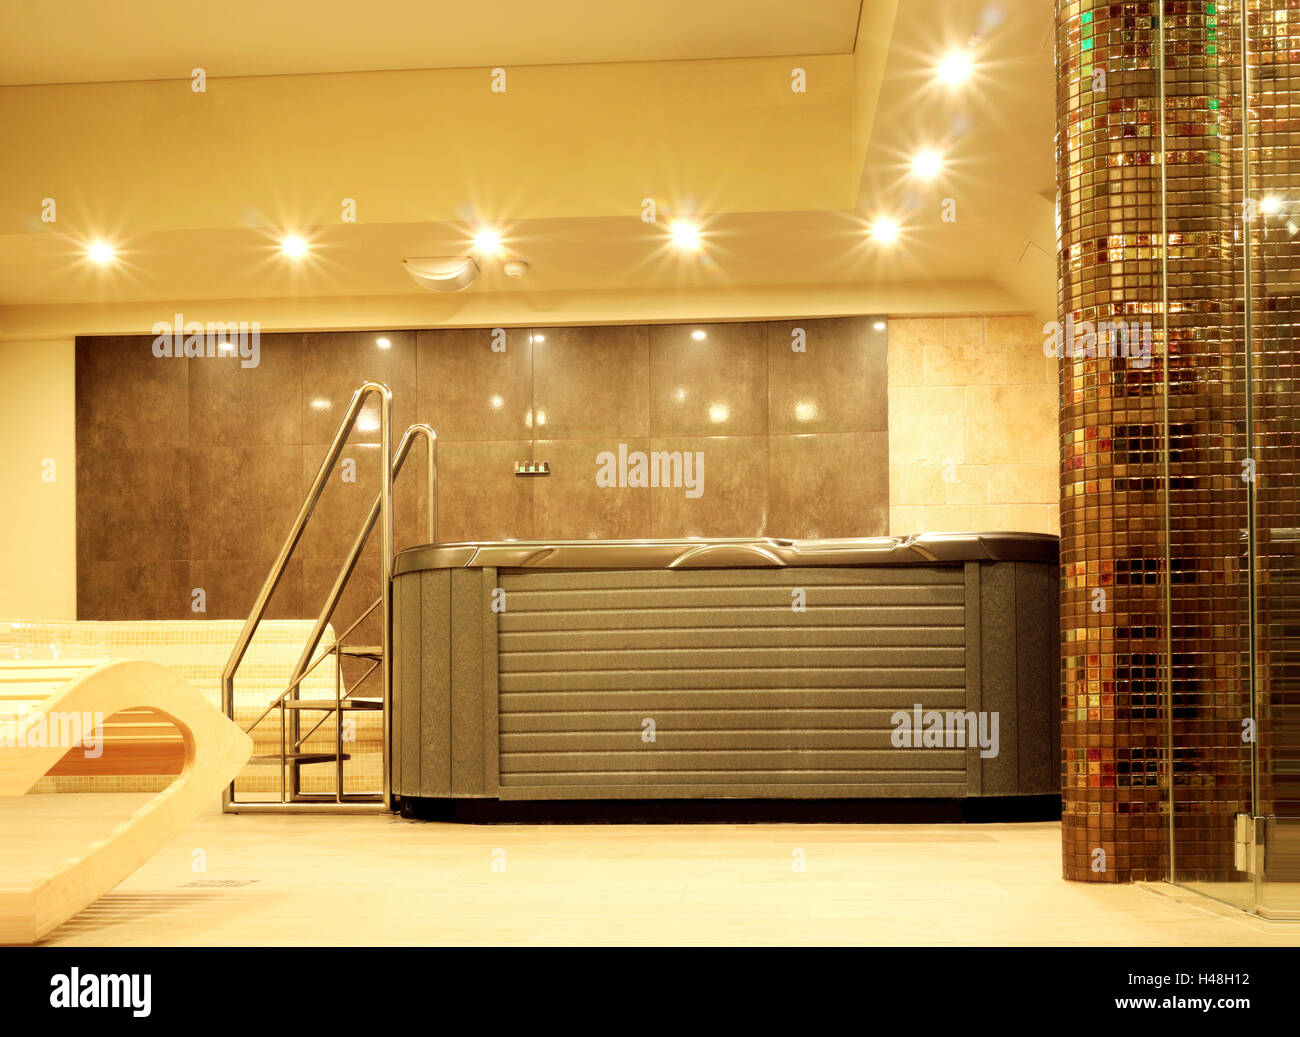 Indoor jacuzzi with metal stairs in a mosaic walled bathroom, in relaxing ambient light - Stock Image